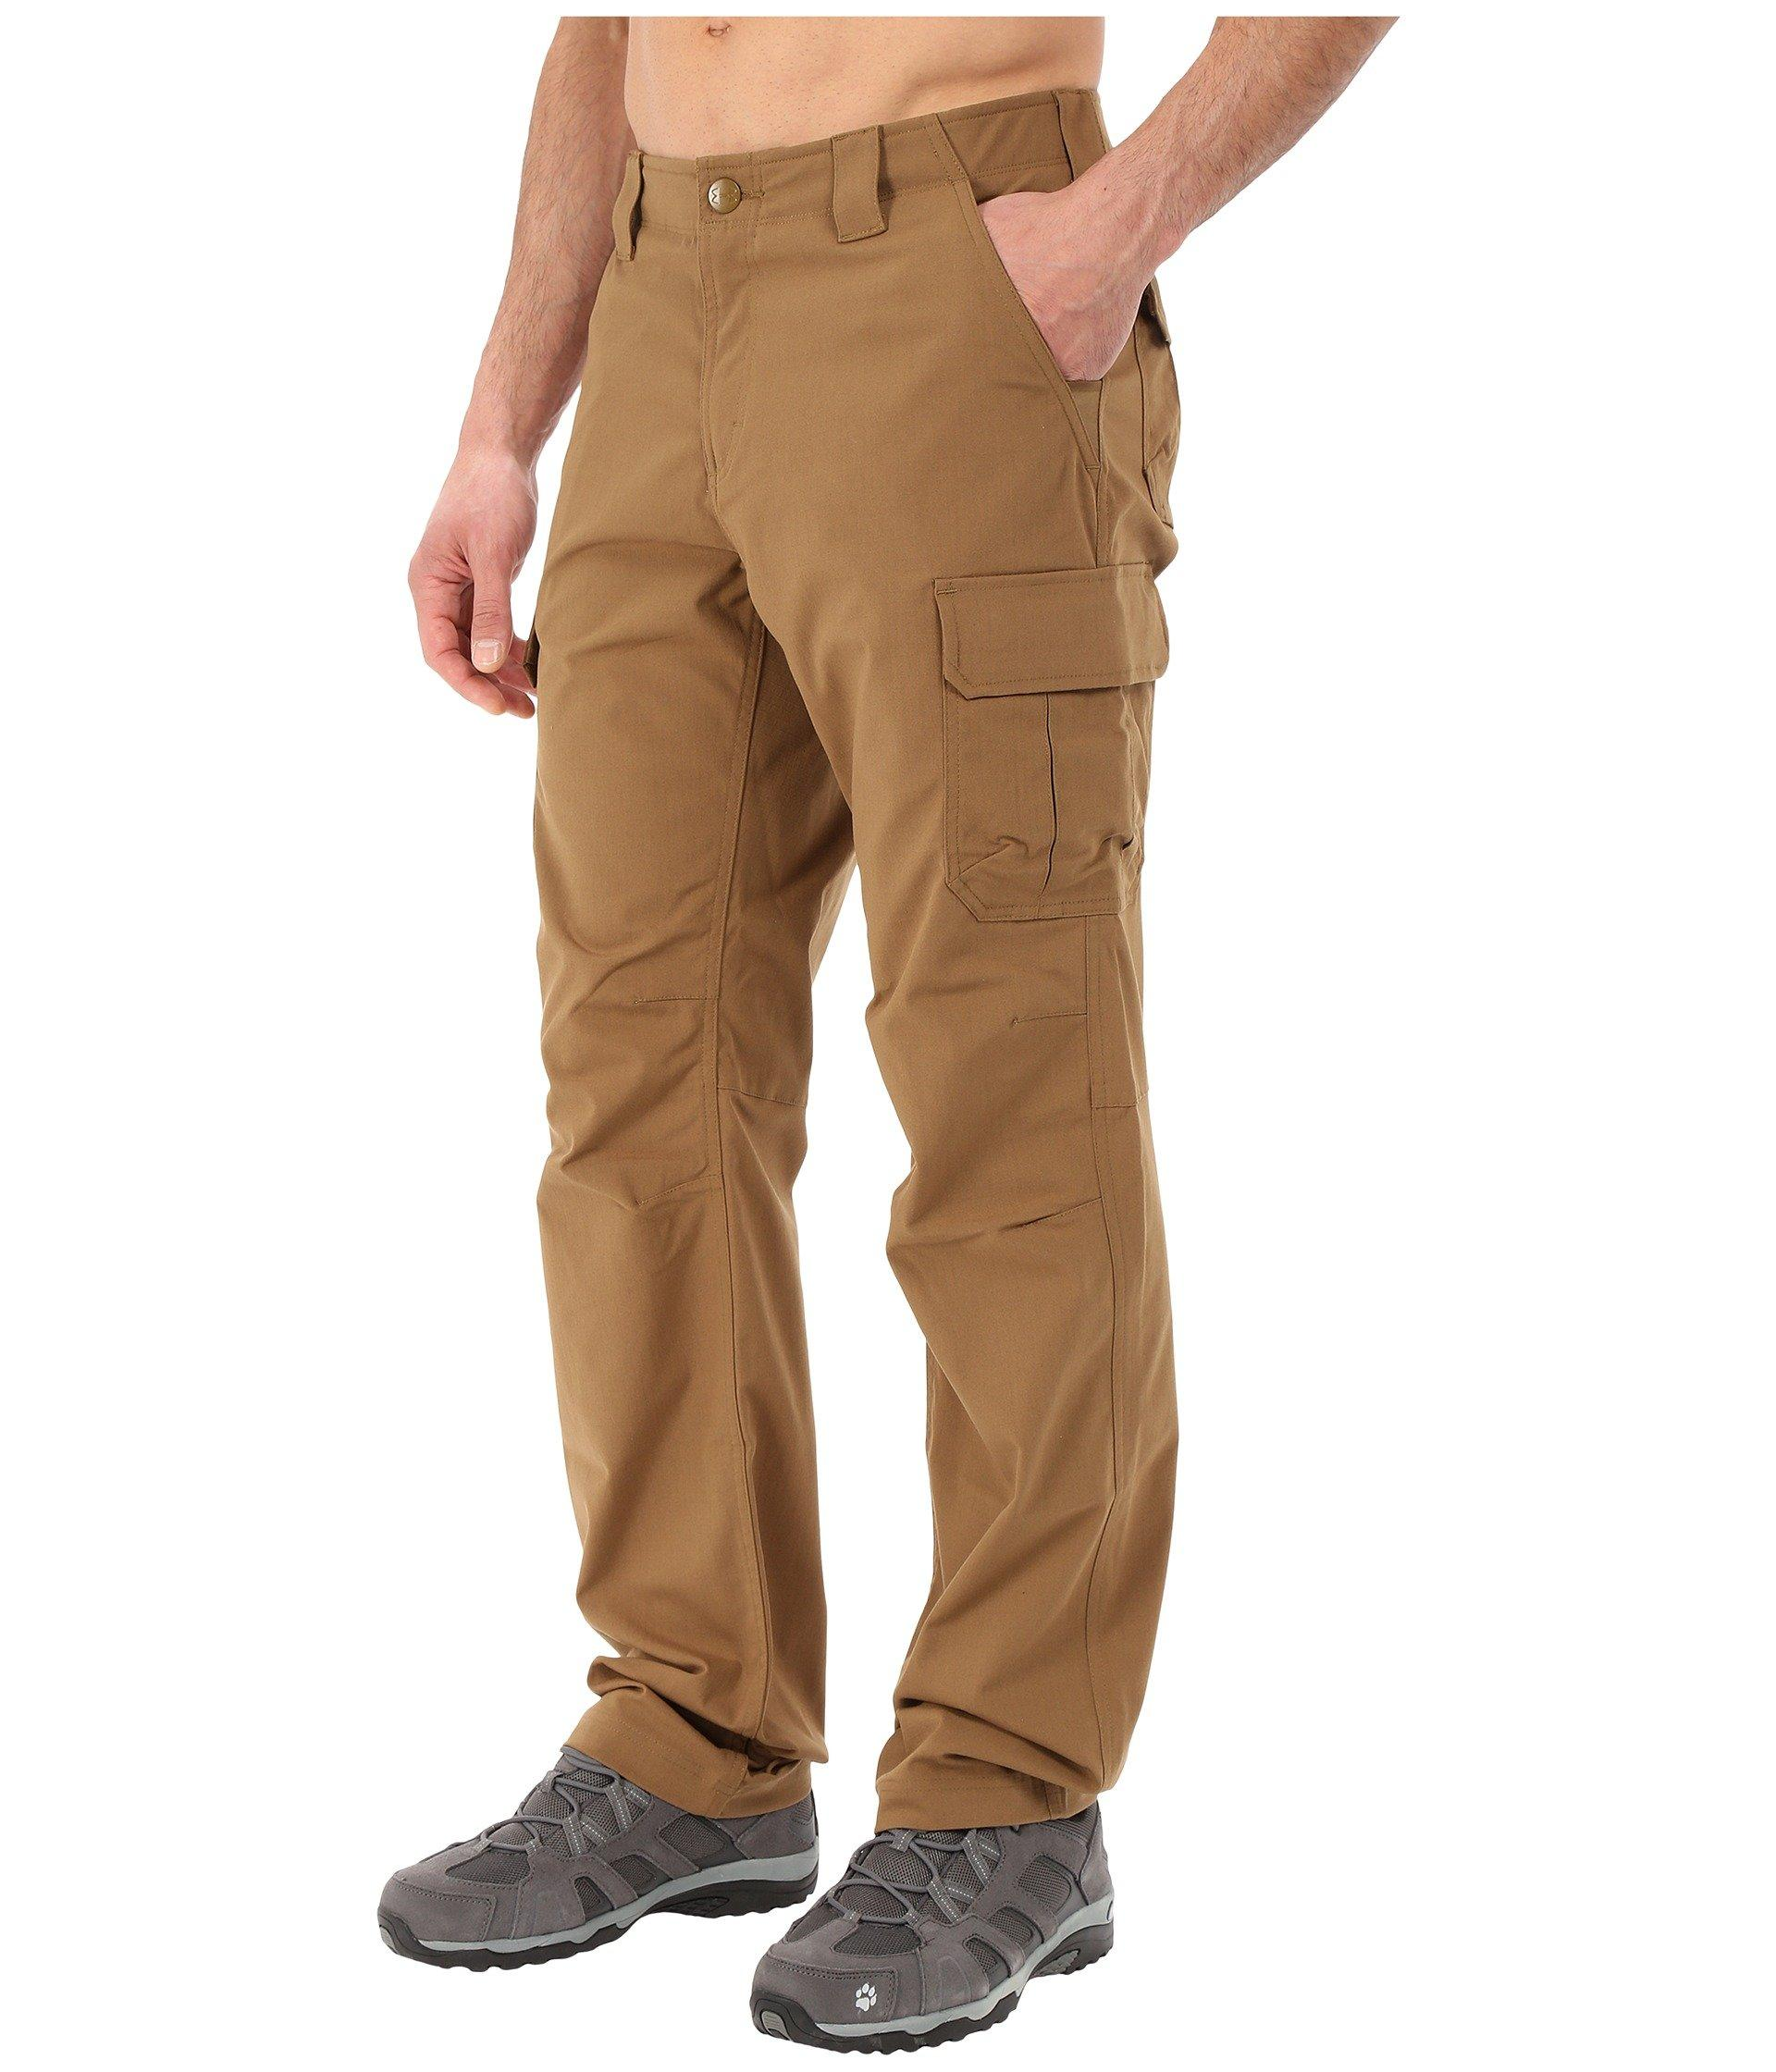 b94e620eb9fcce Lyst - Under Armour Ua Tac Patrol Pants Ii in Brown for Men - Save 56%